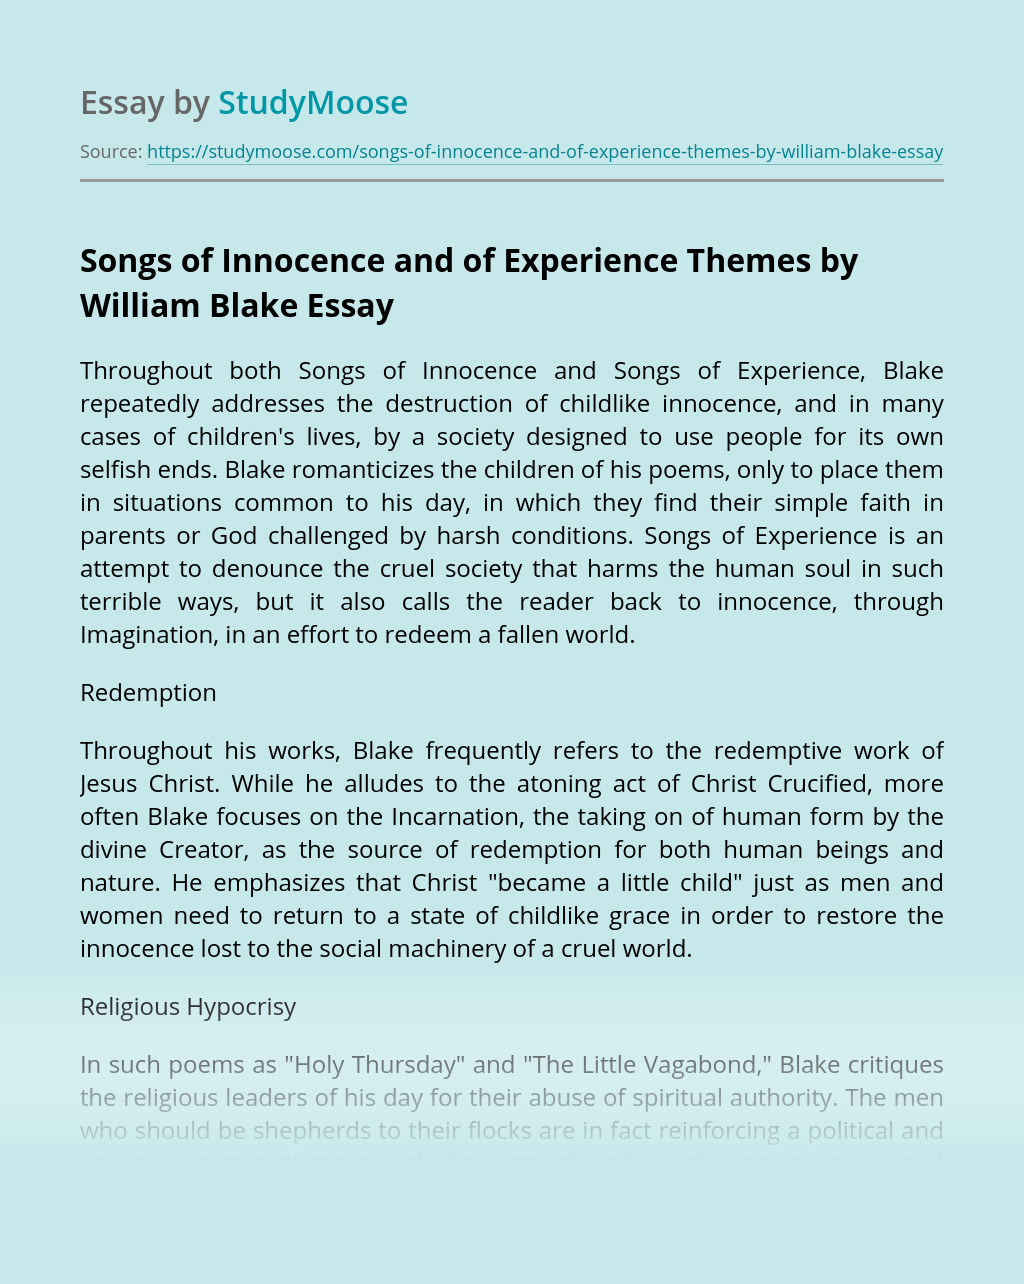 Songs of Innocence and of Experience Themes by William Blake